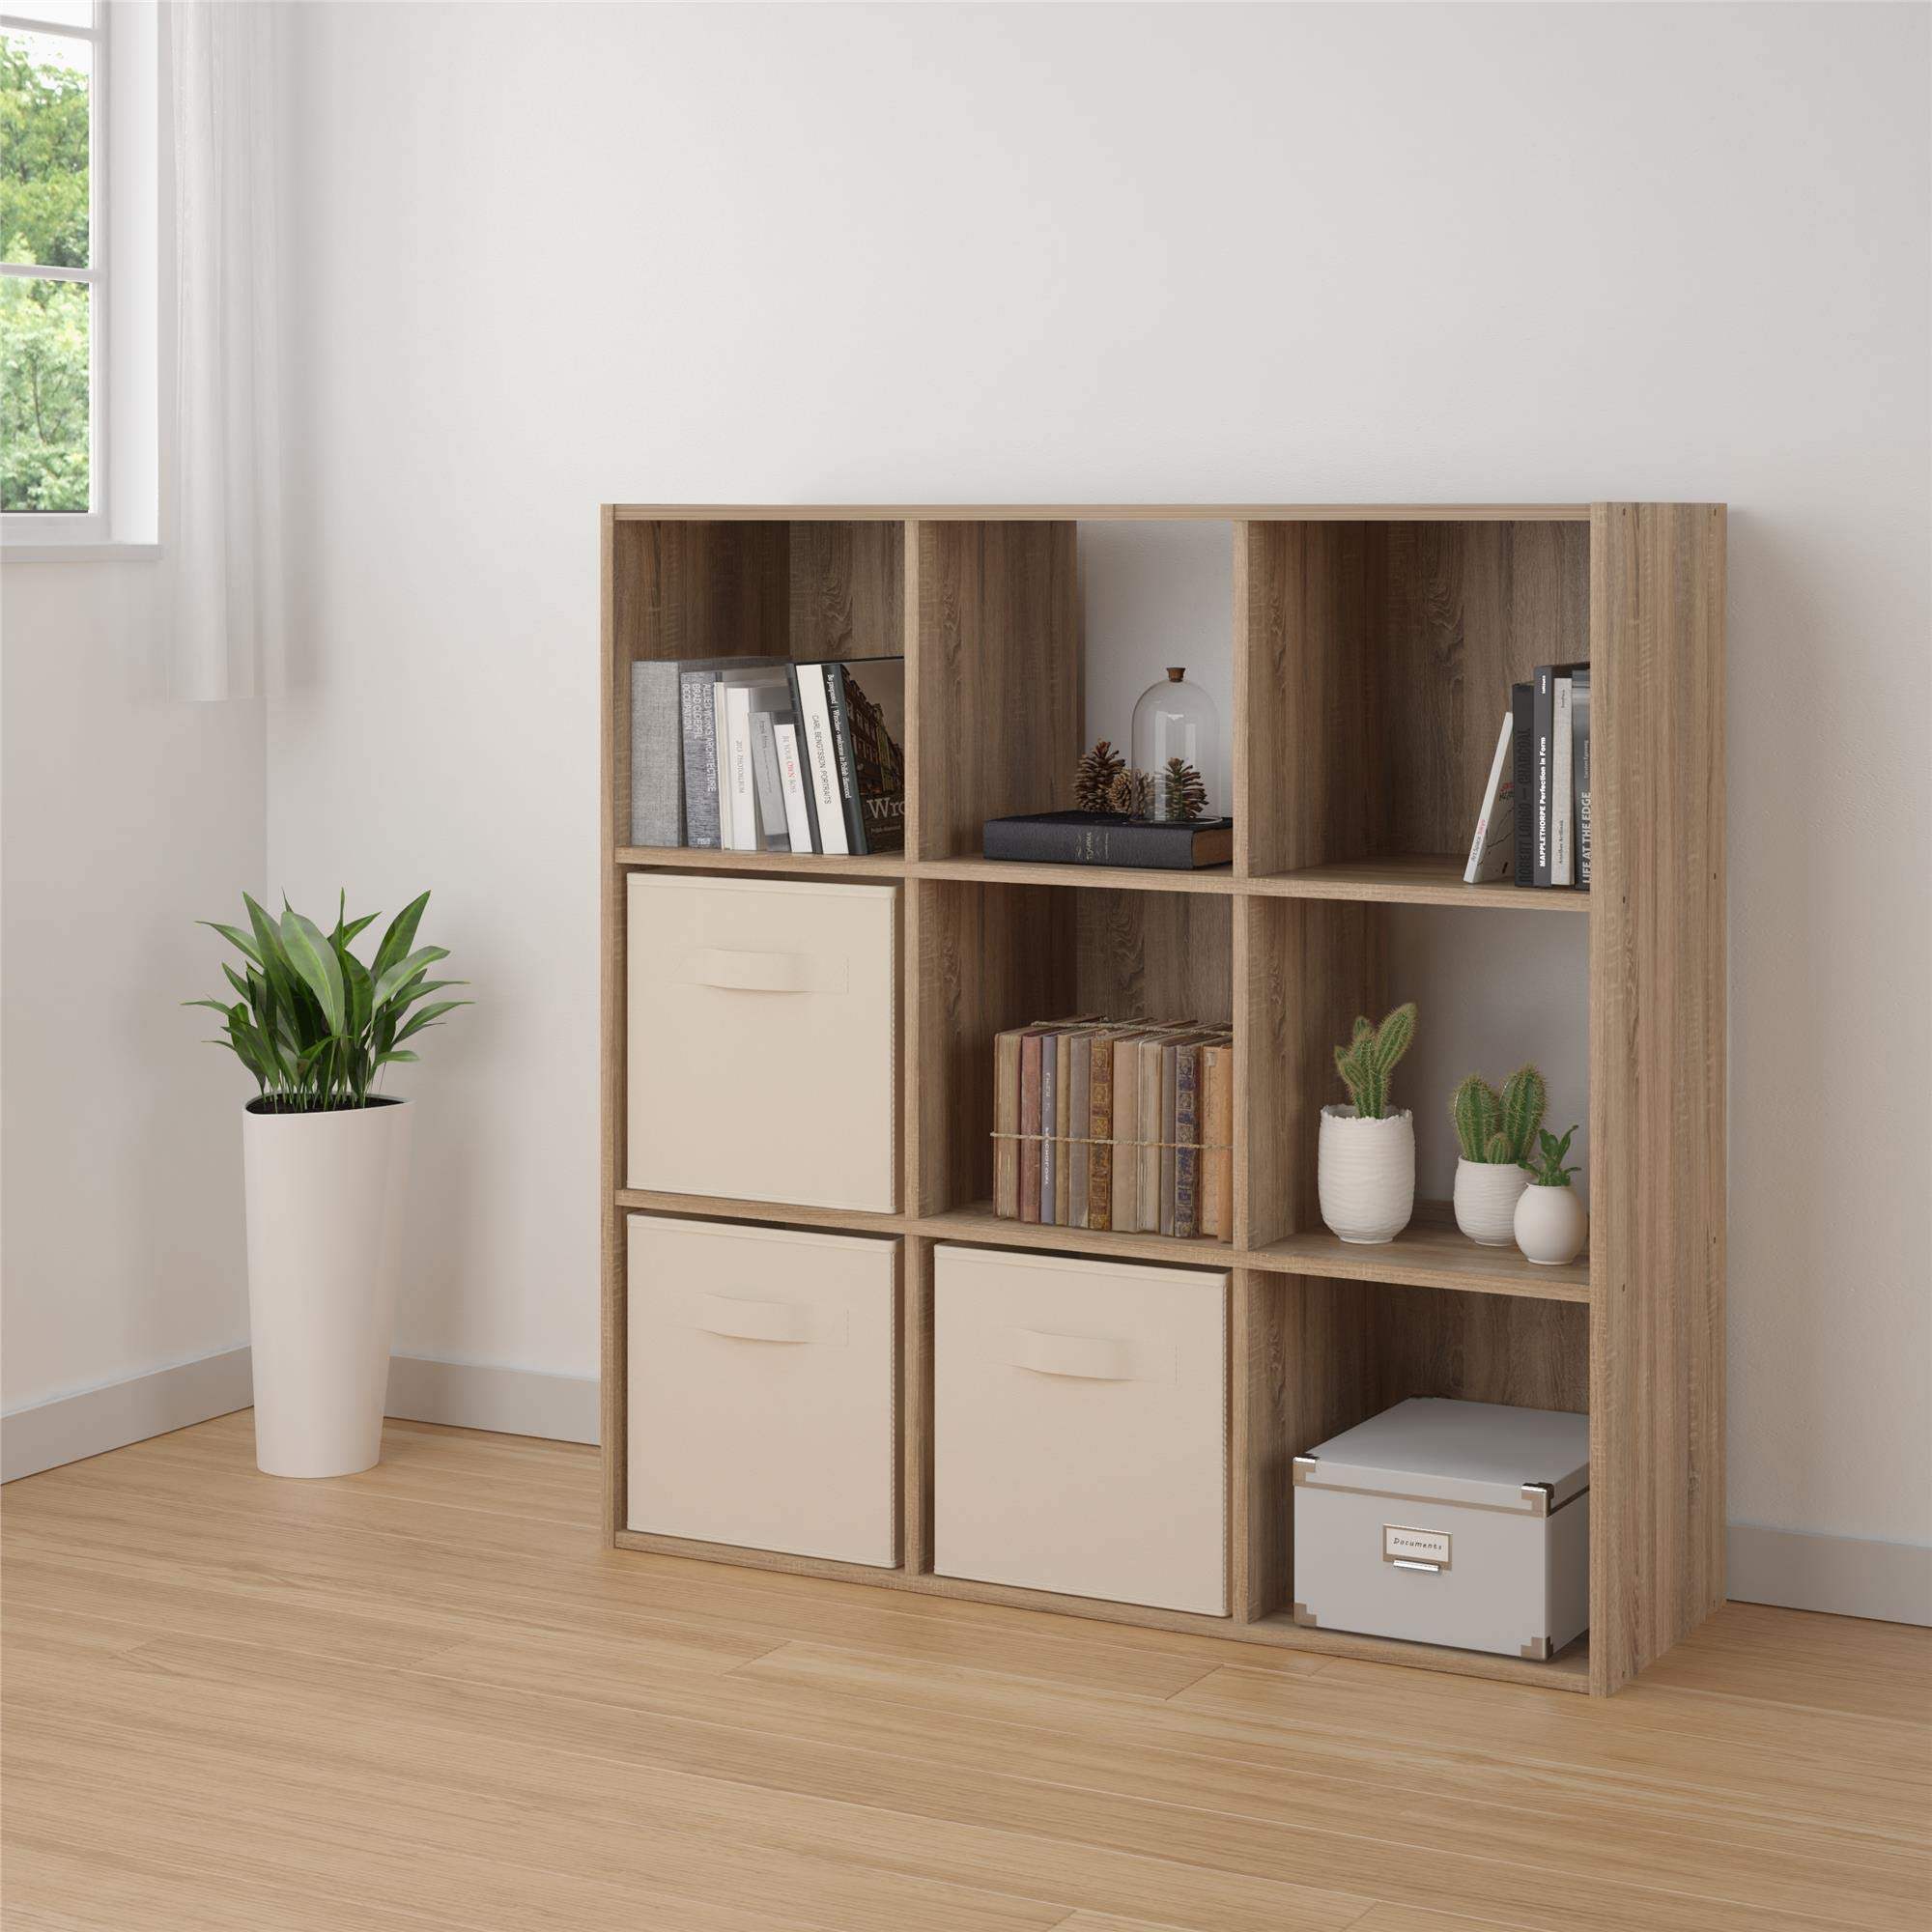 RealRooms Tally 9 Cube Bookcase, Weathered Oak by REALROOMS (Image #1)